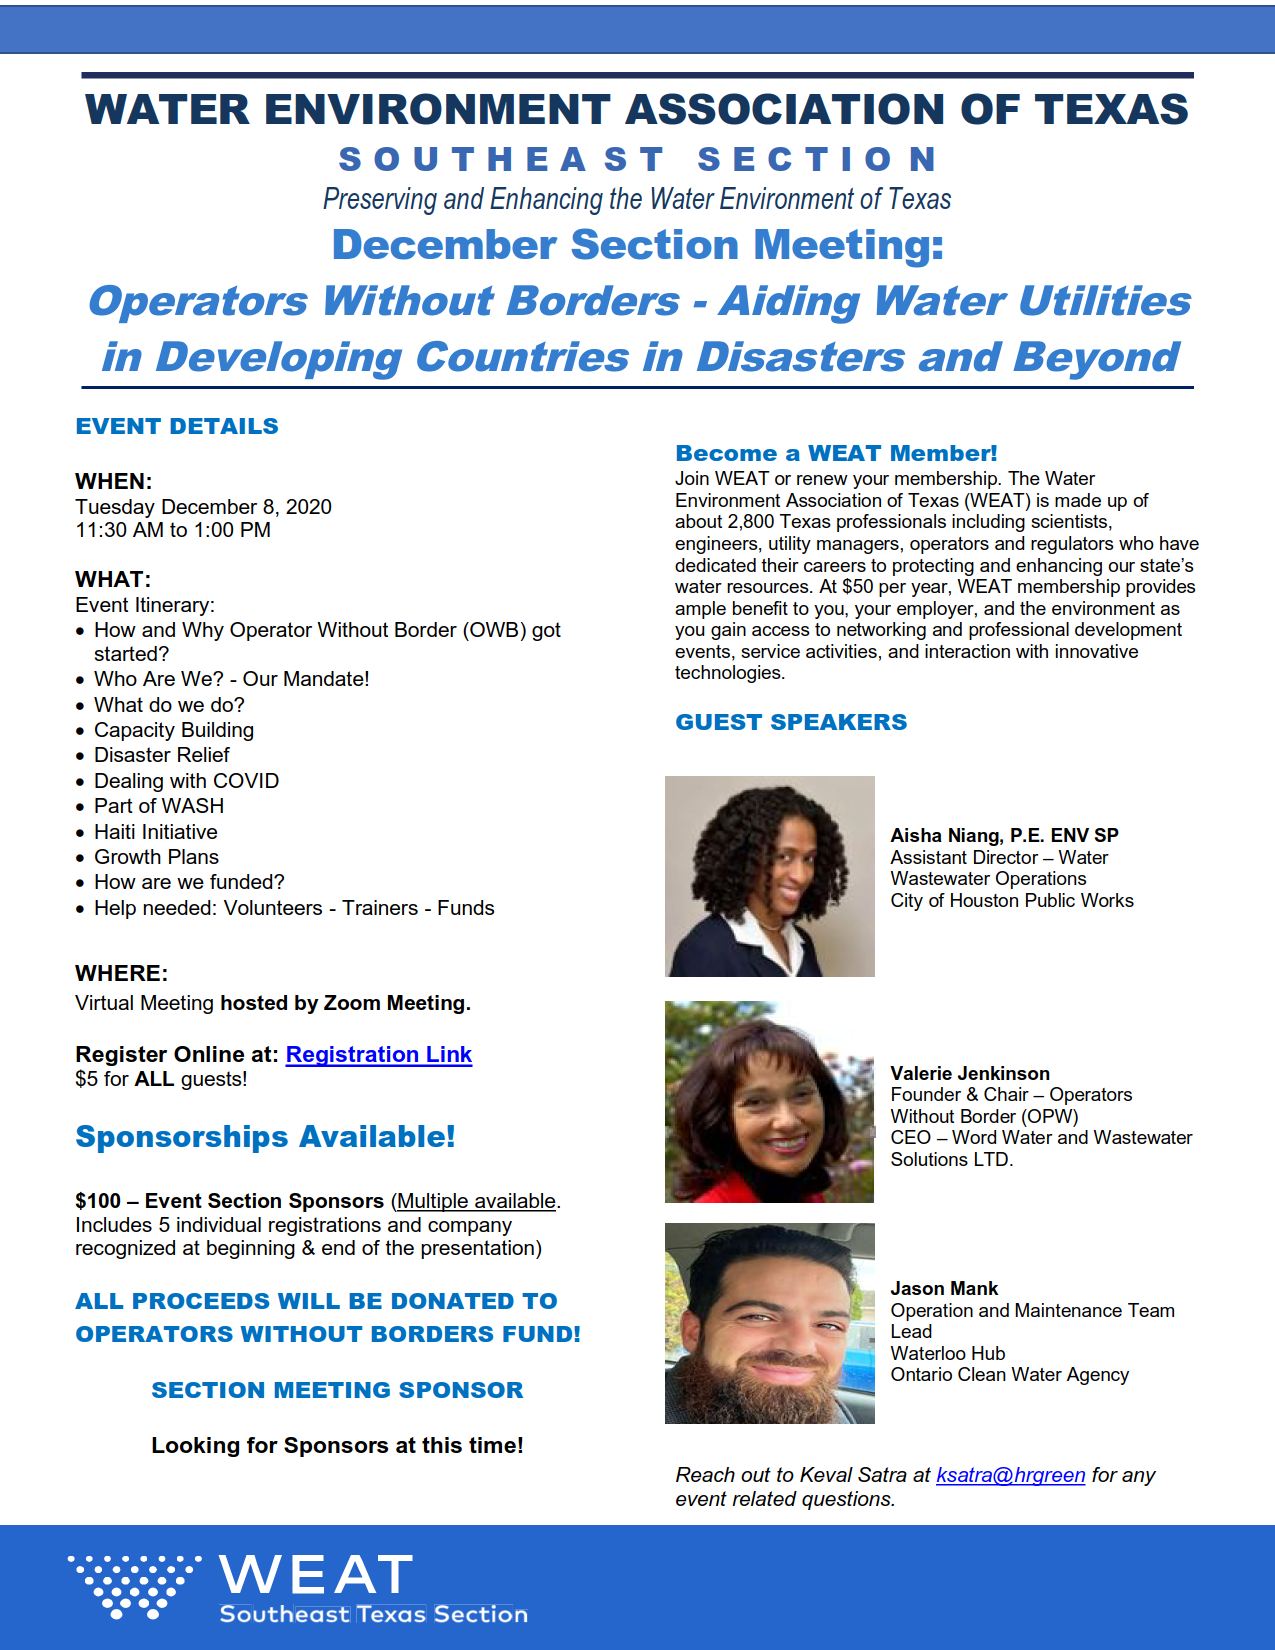 WEAT 2020 – December Section Meeting